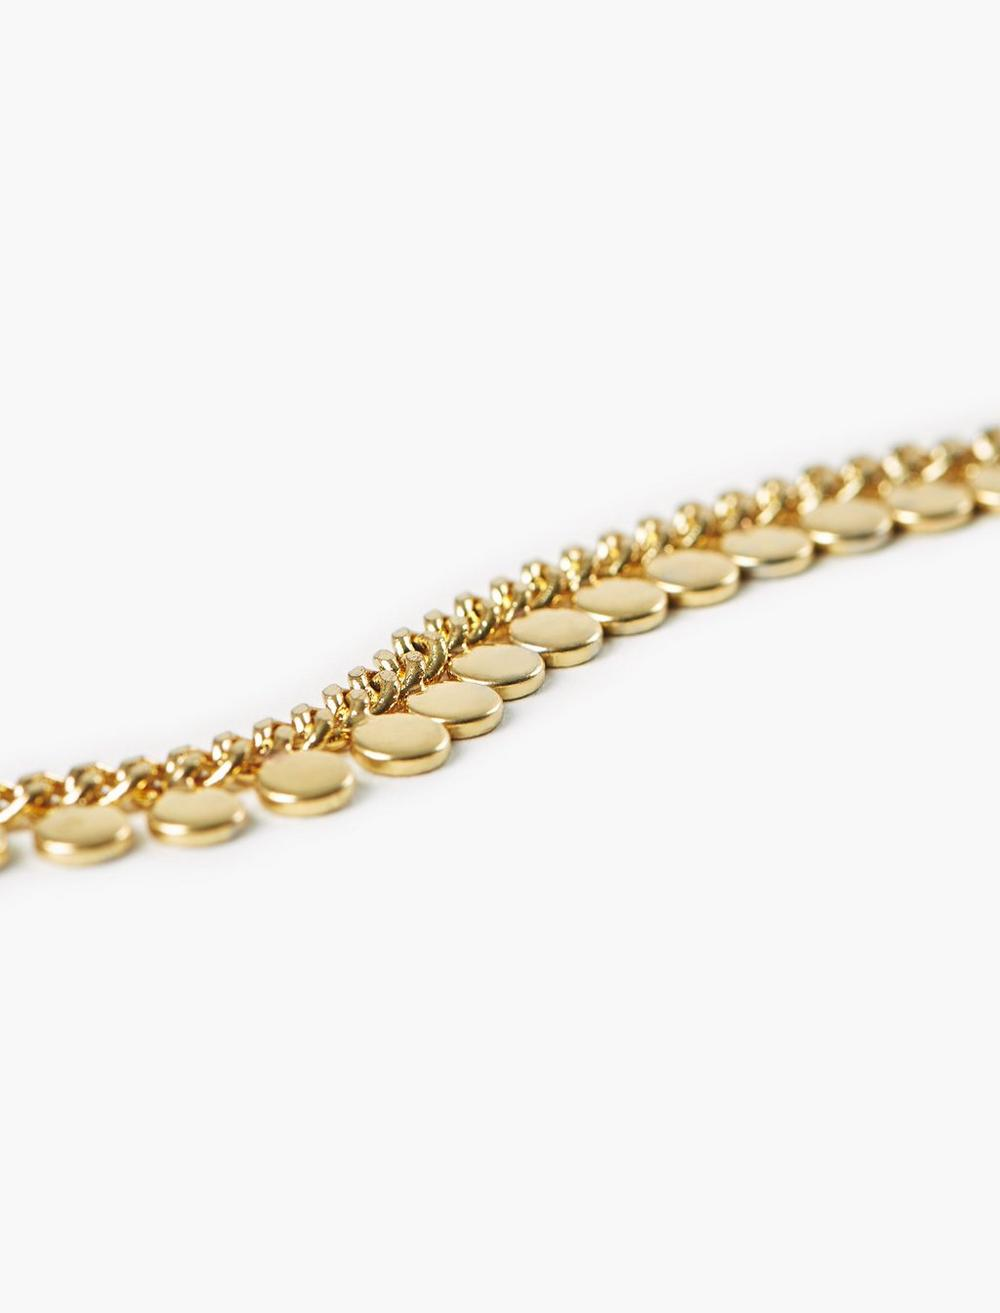 CHAIN NECKLACE, image 6